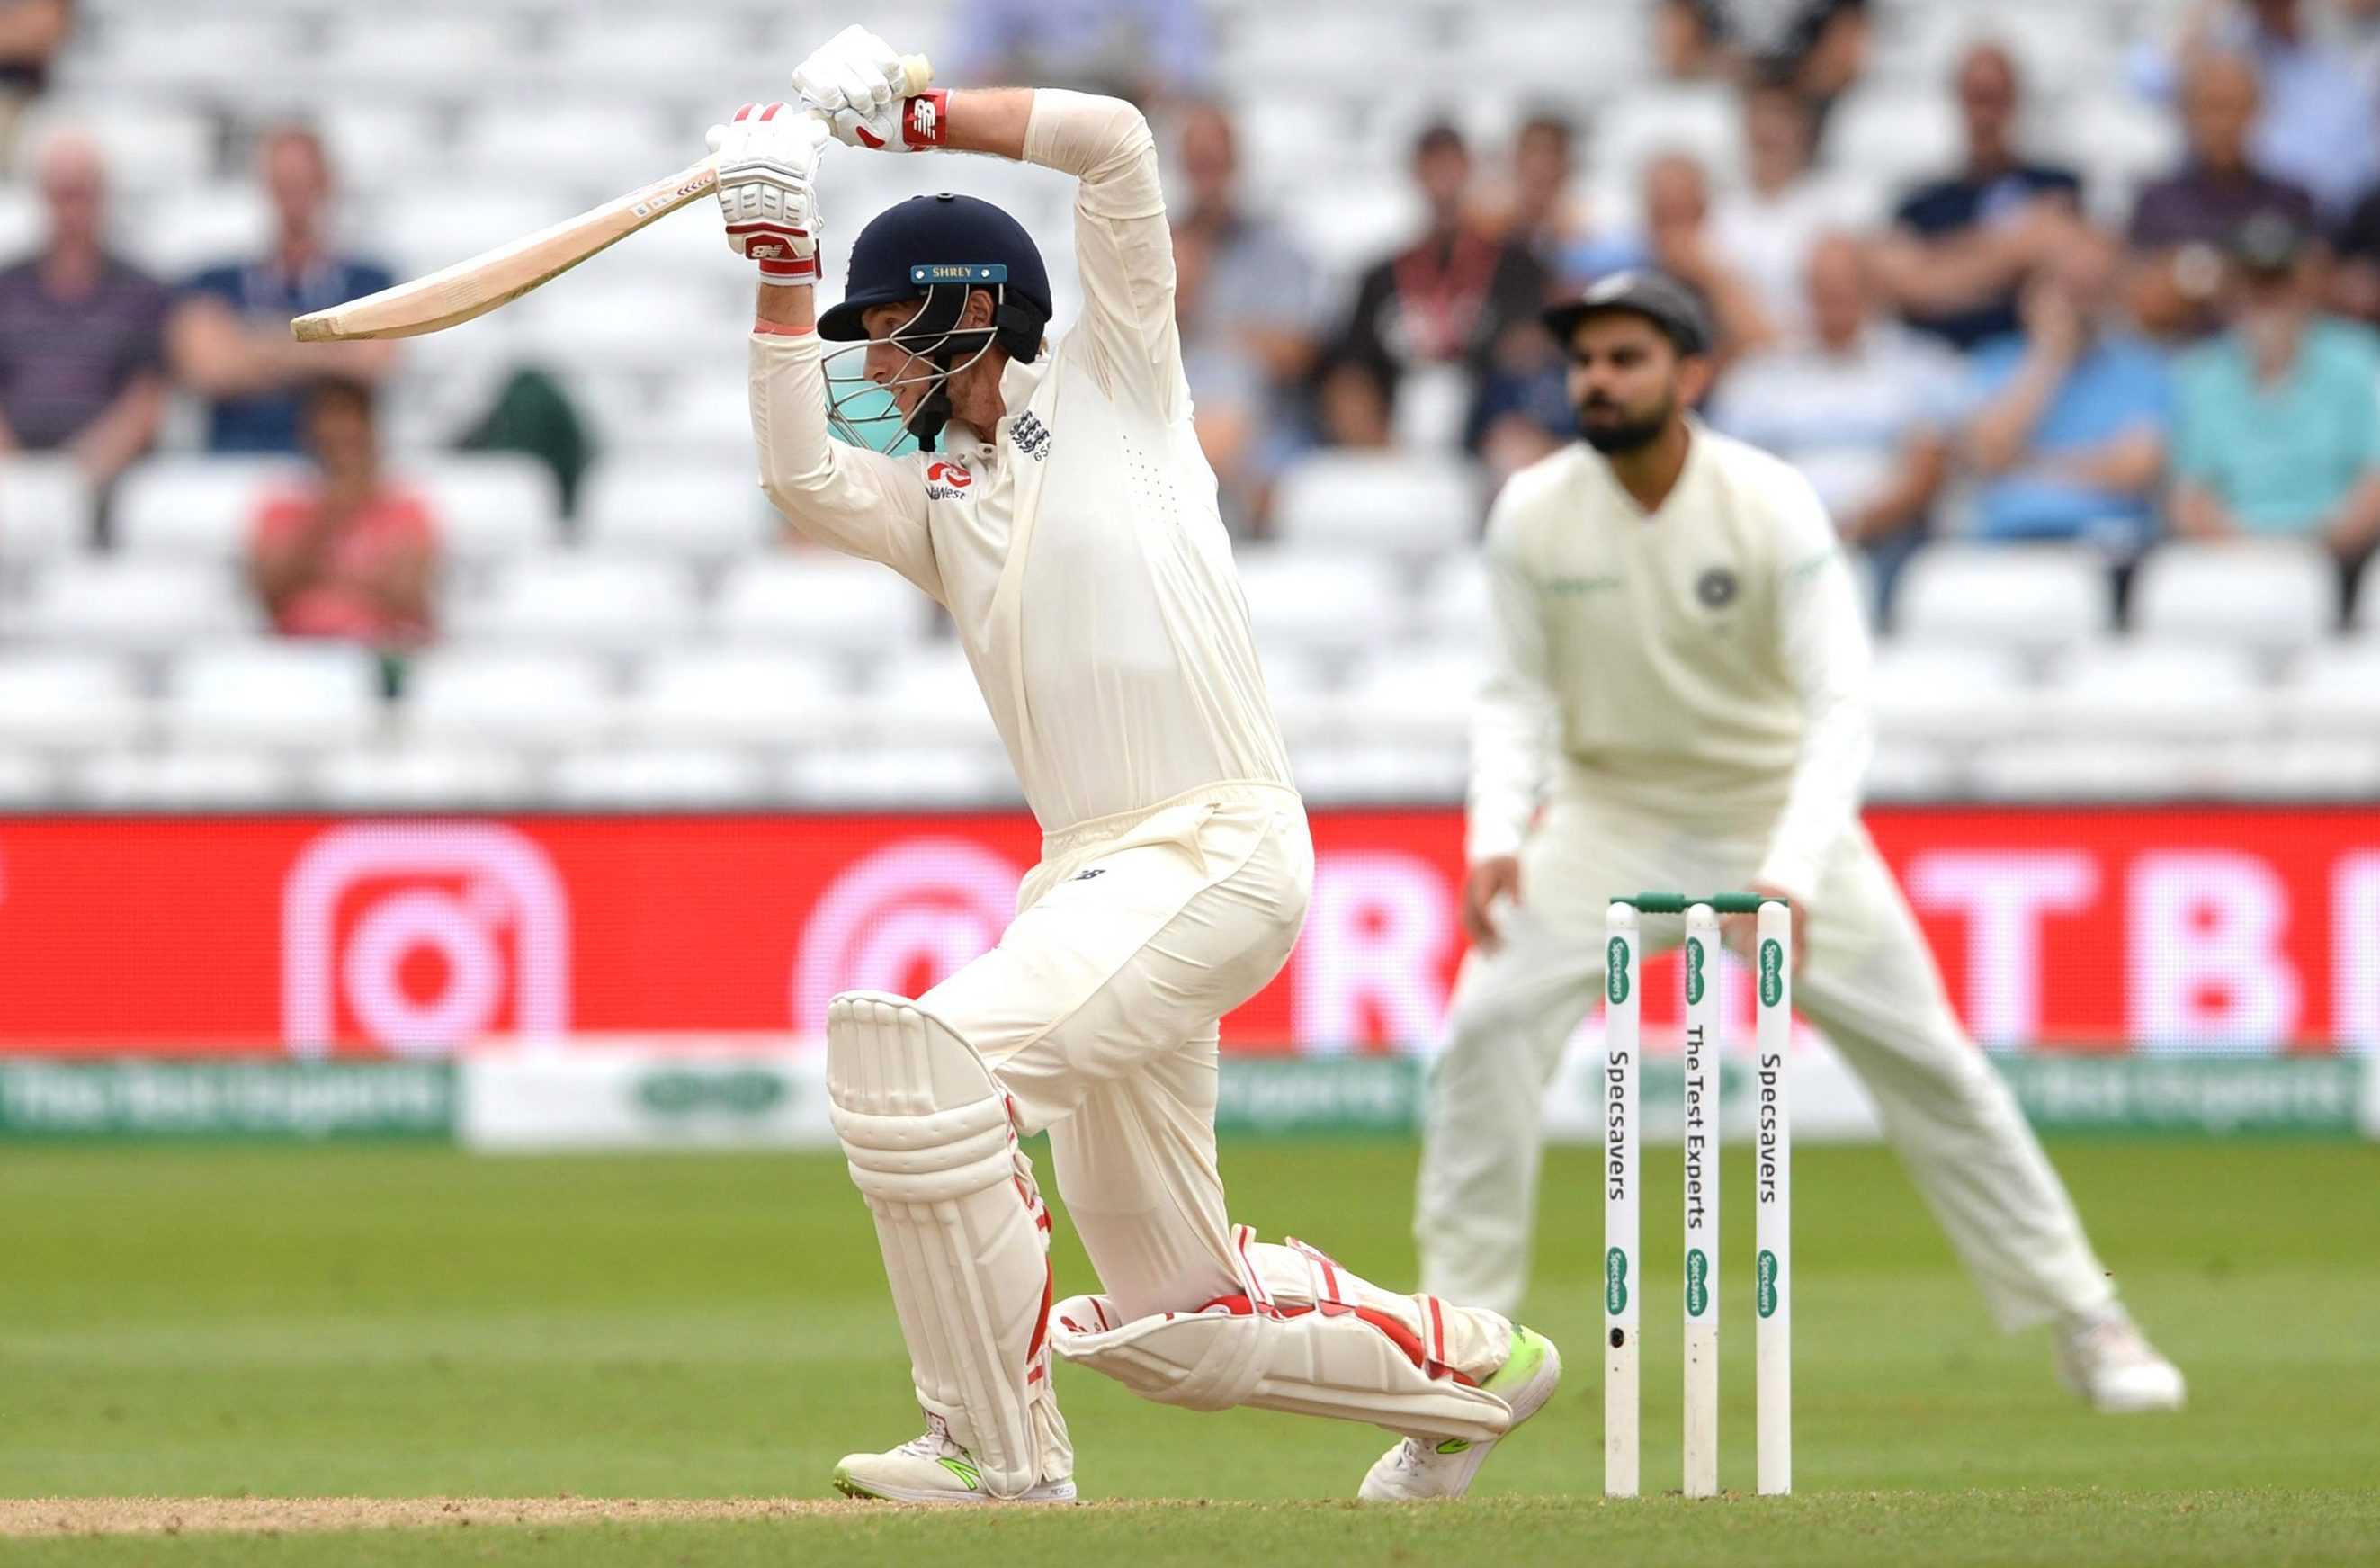 Joe Root bats at No 3 for England, even though No 4 is his best position